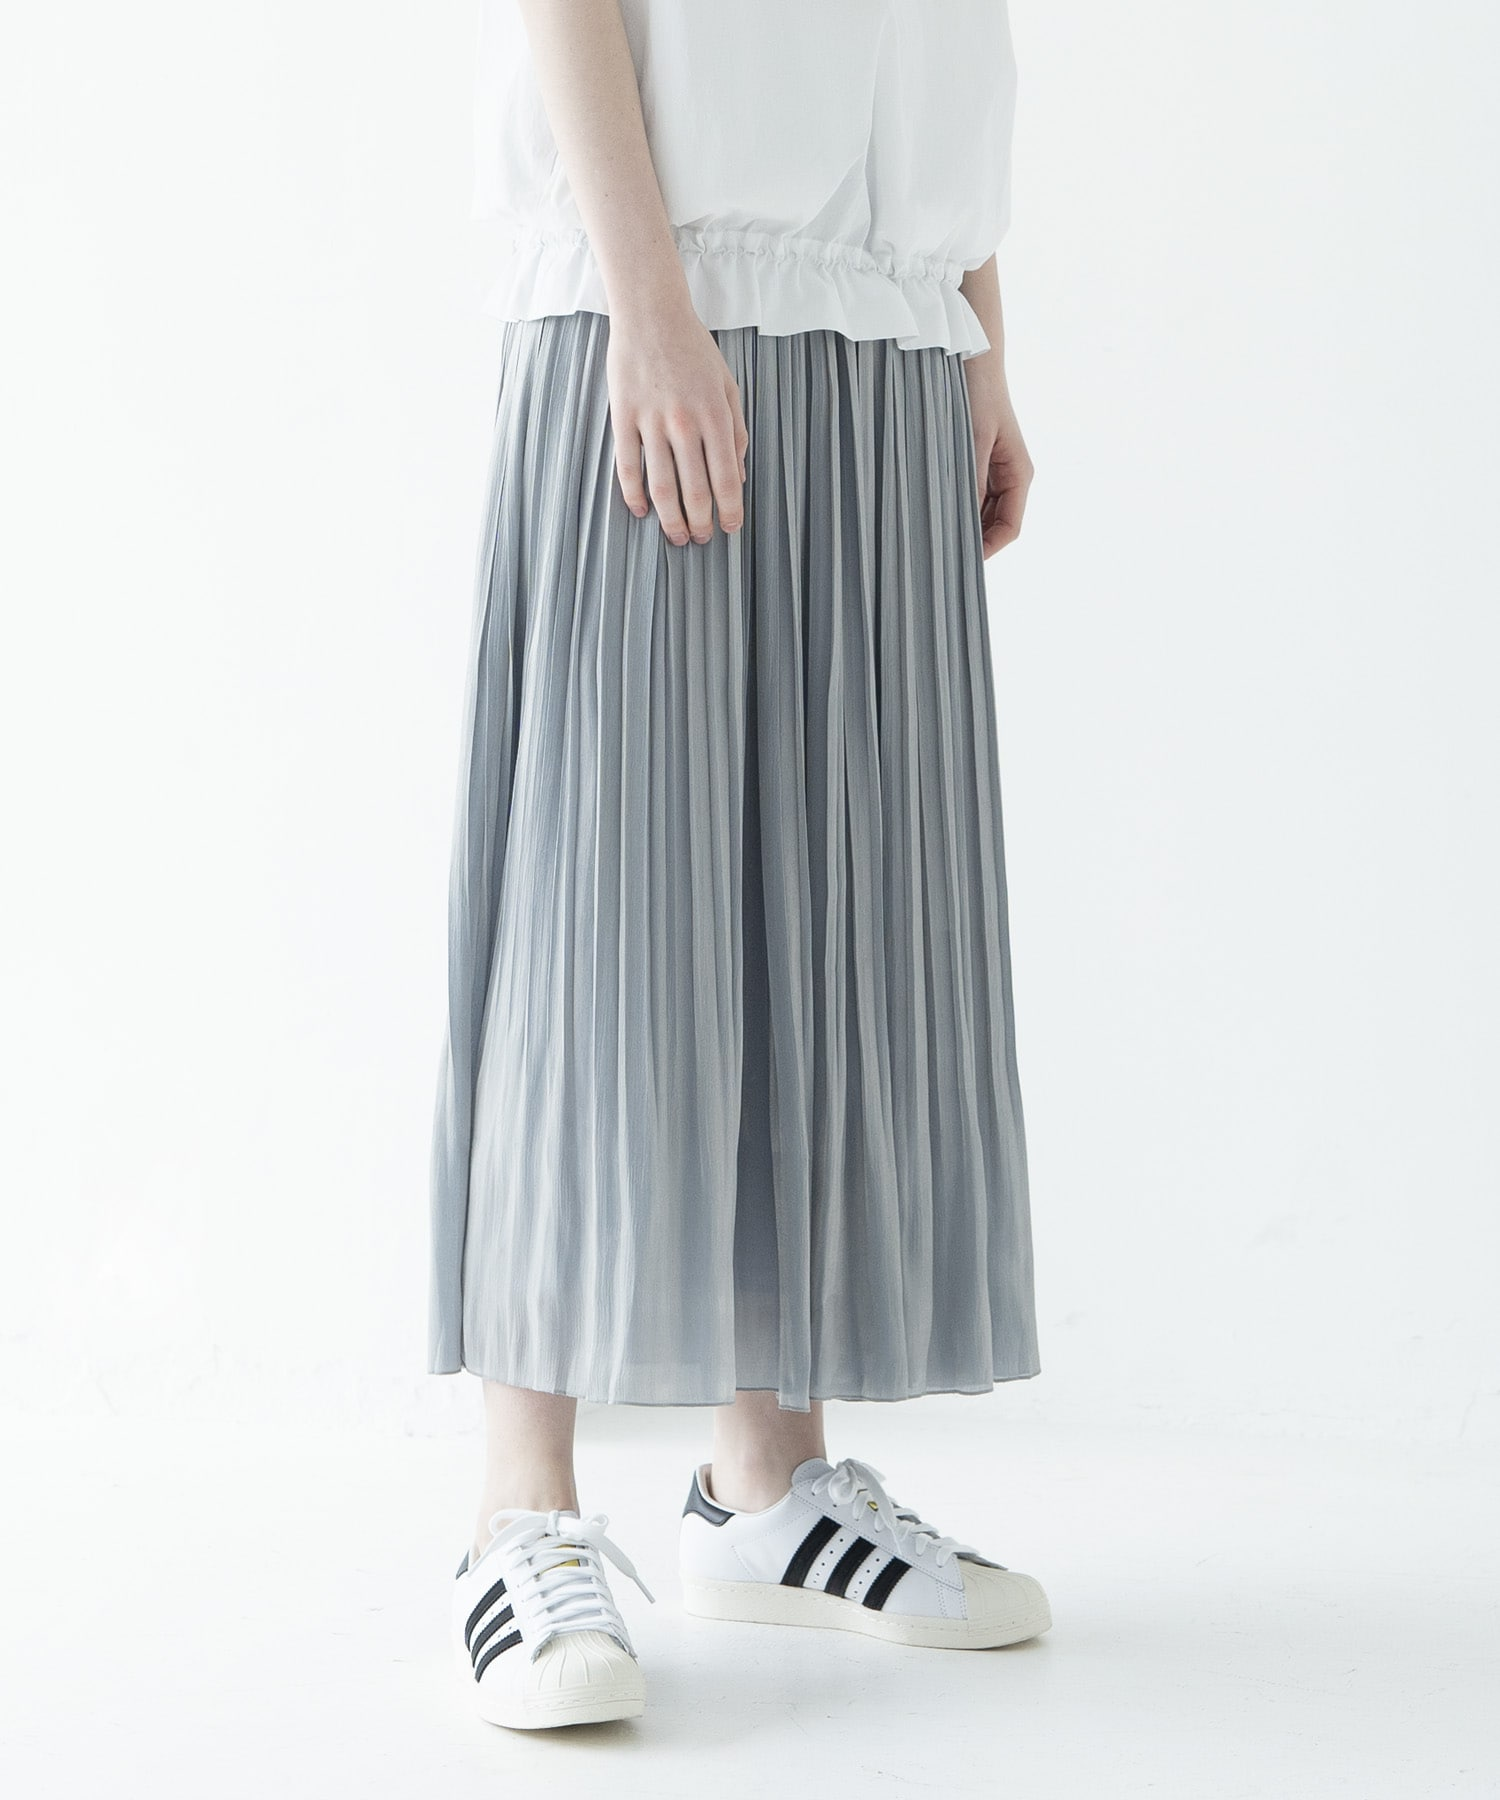 chambray shine pleats skirt